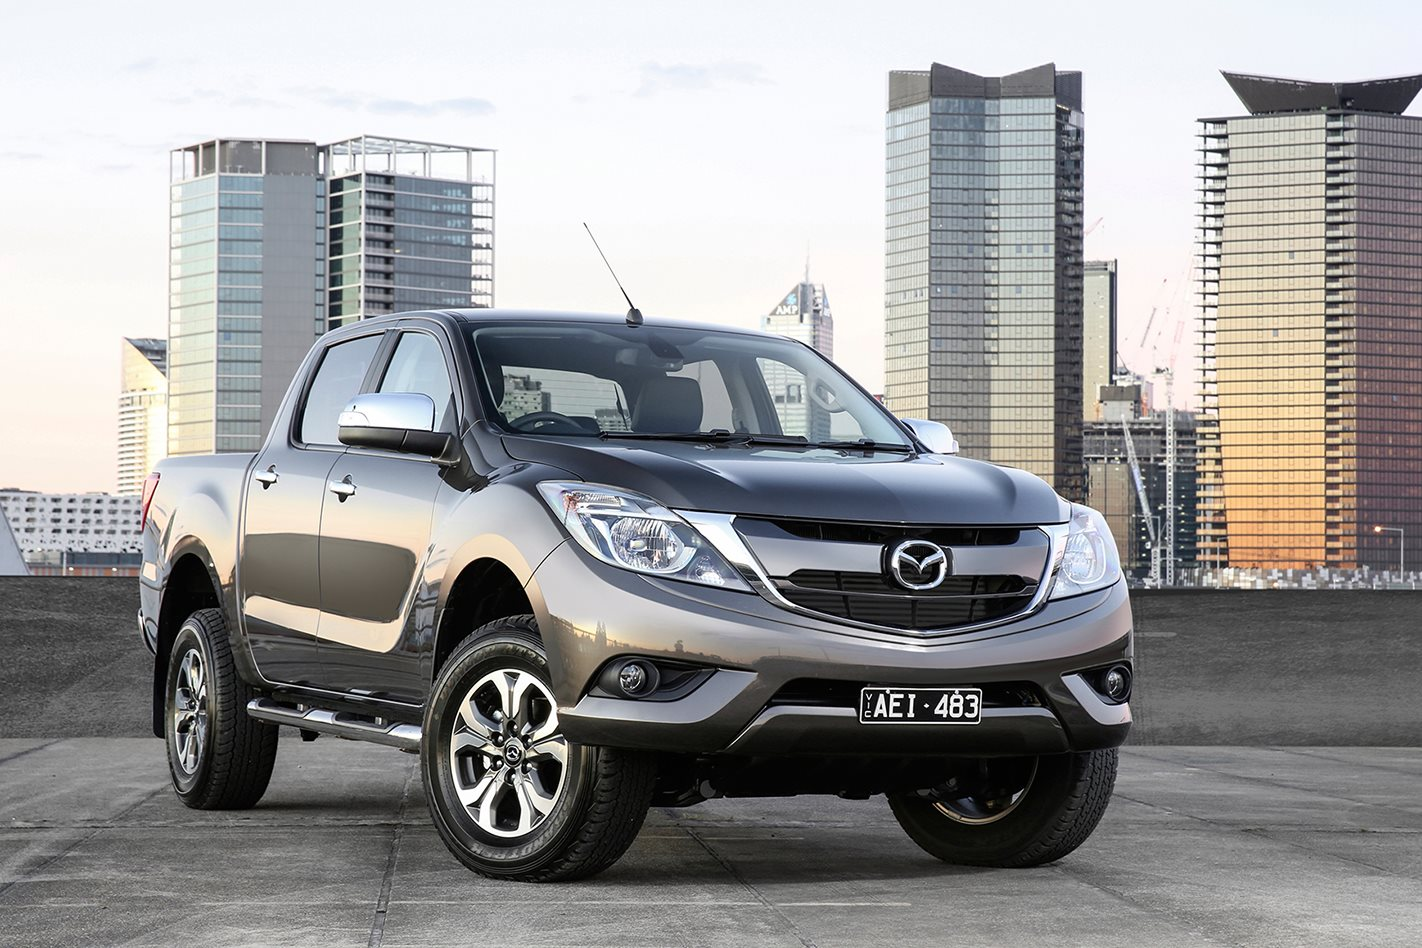 New Bt 50 2019 >> 2016 Mazda BT-50 Review